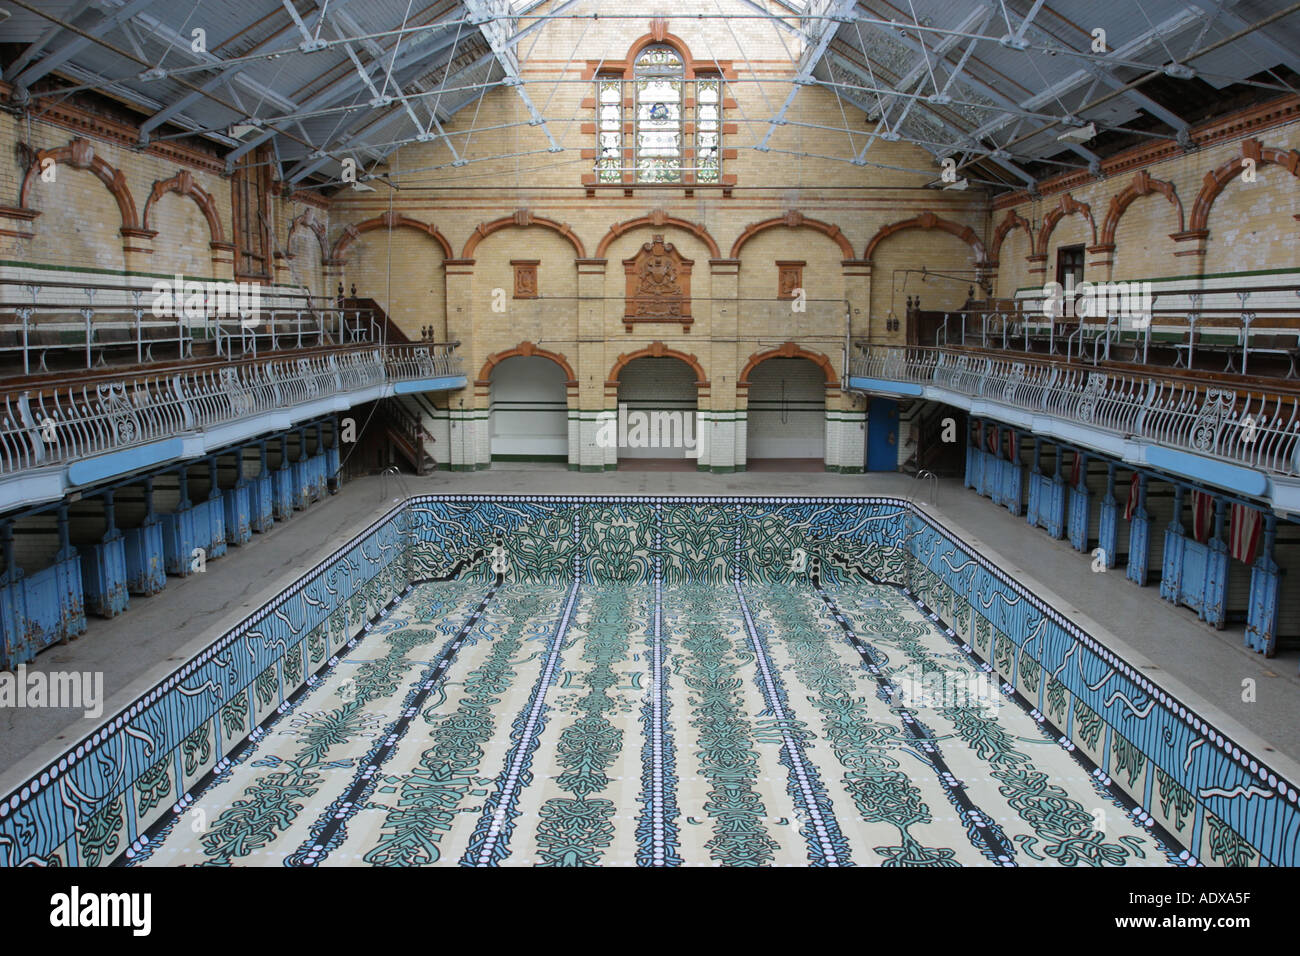 Males first class gala pool Victoria Baths Hathersage Road Longsight Manchester UK - Stock Image